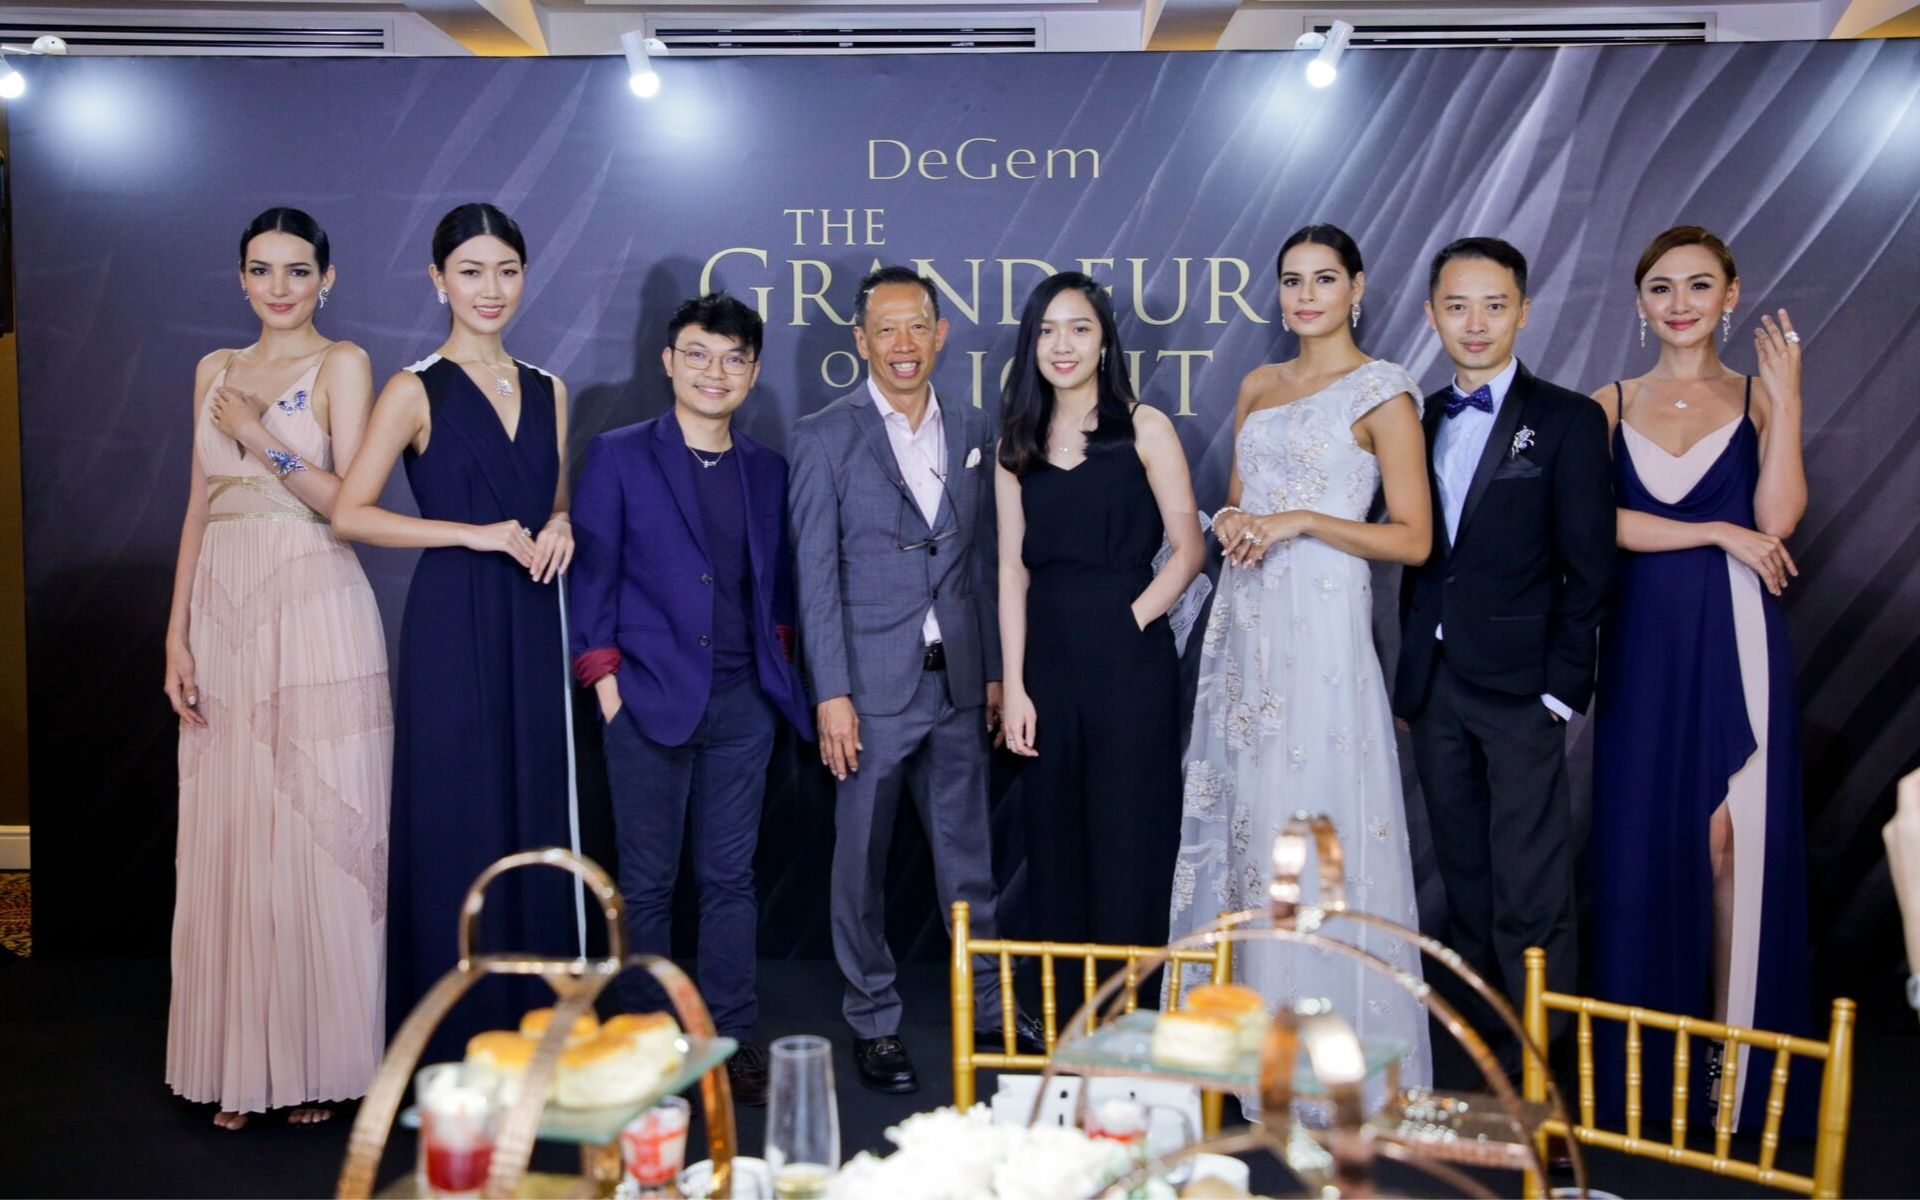 Freedome Choong, Stephen Choong, Leong Su Ling and Yew Yong Hee posing with DeGem models